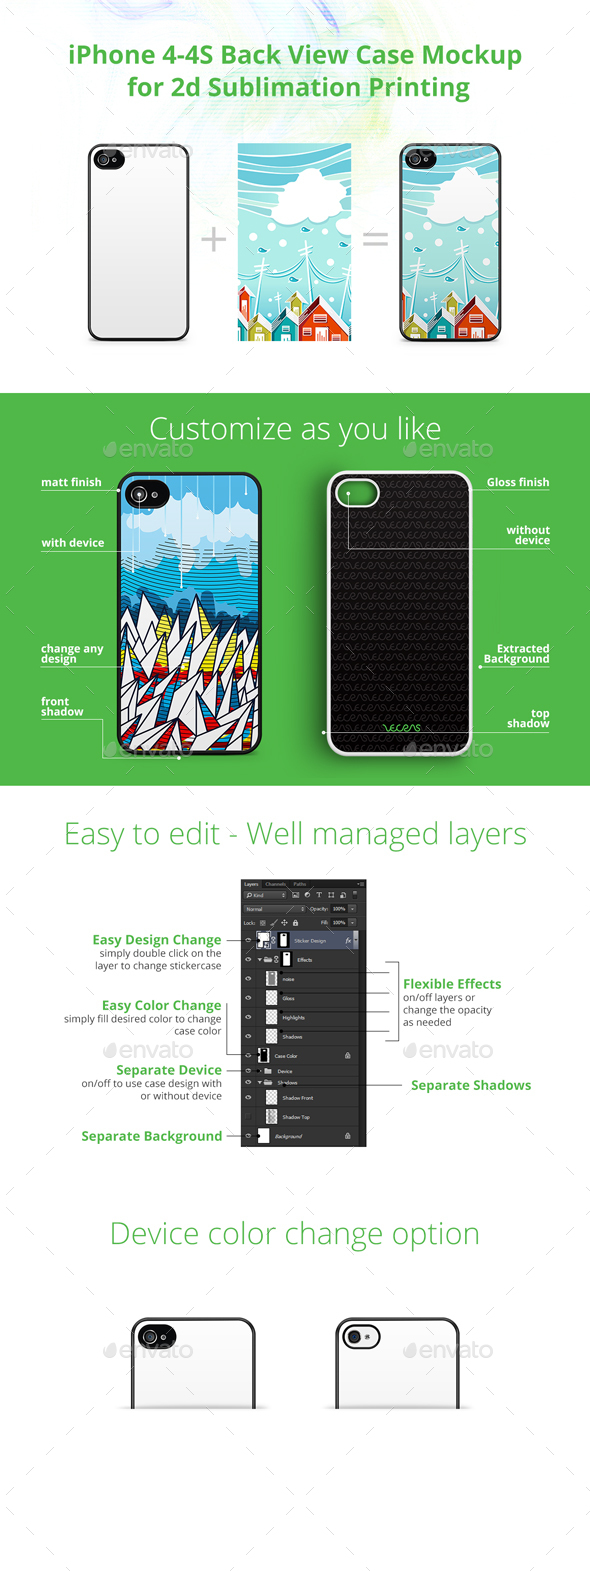 iPhone 4-4S Case Design Mockup for 2d Sublimation Printing - Back View - Mobile Displays